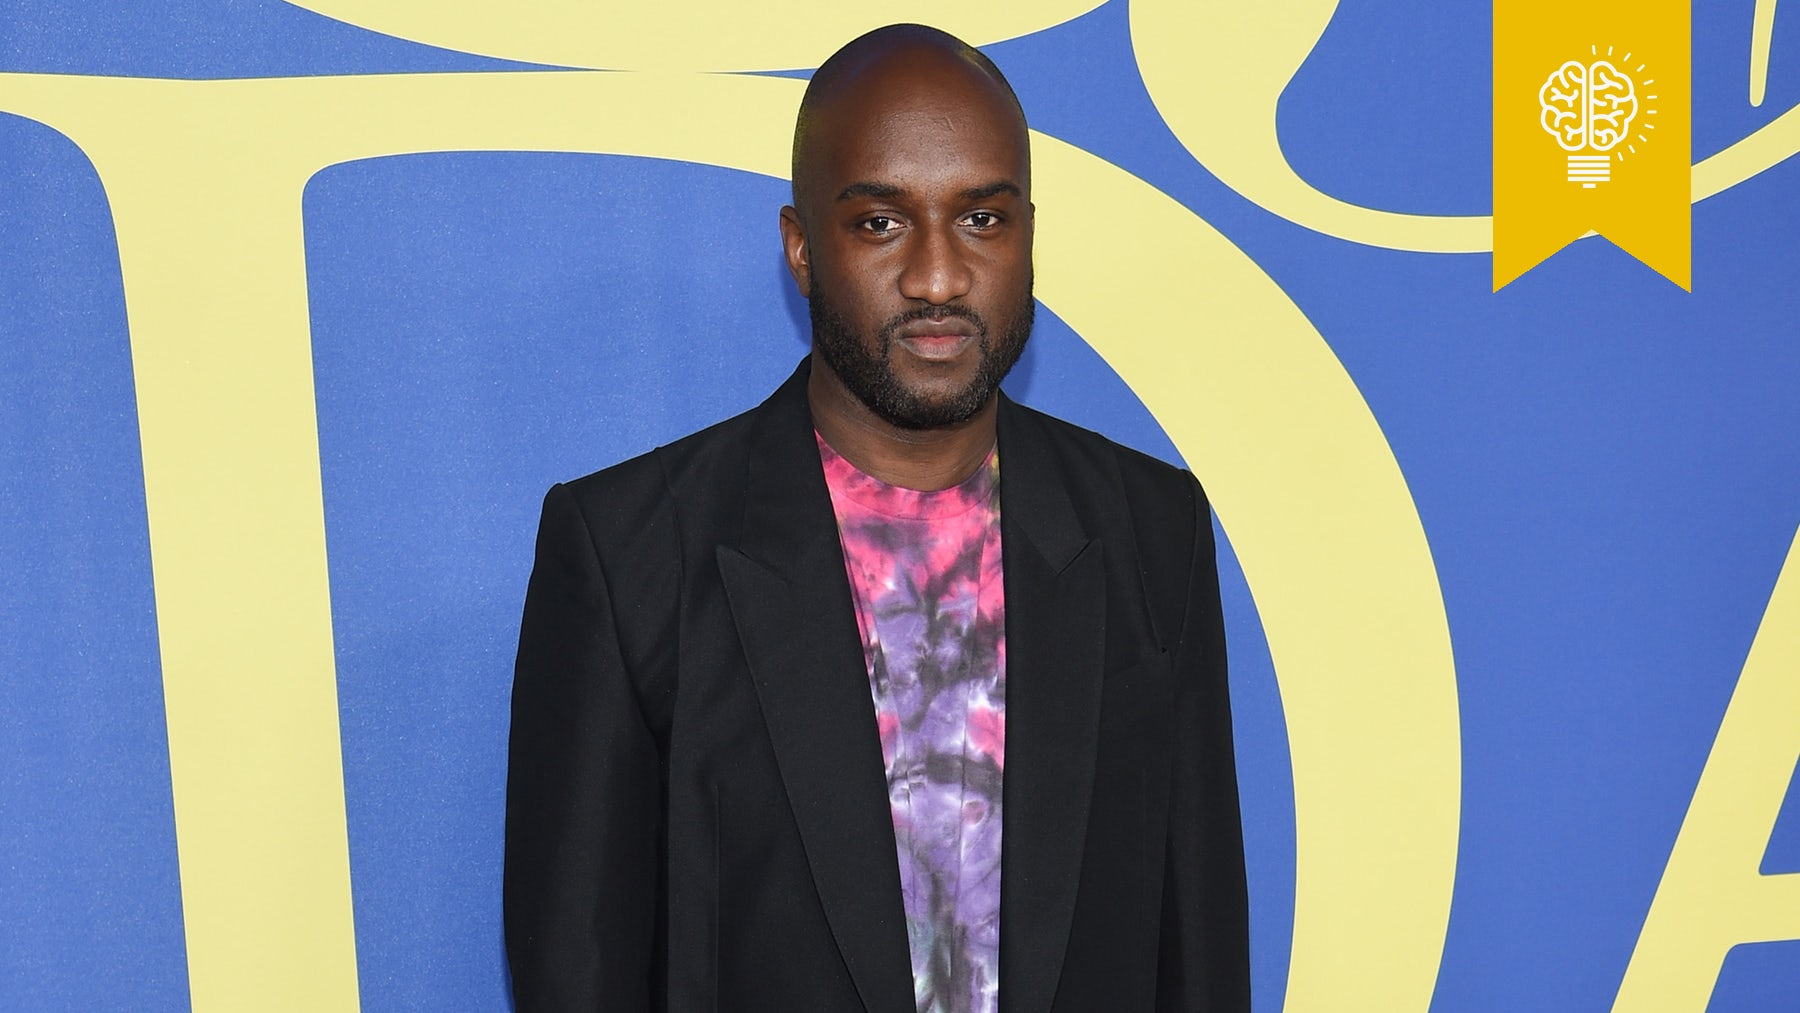 Virgil Abloh at the CFDA Awards in a a preview look from Louis Vuitton's upcoming Spring/Summer 2019 show | Source: Courtesy